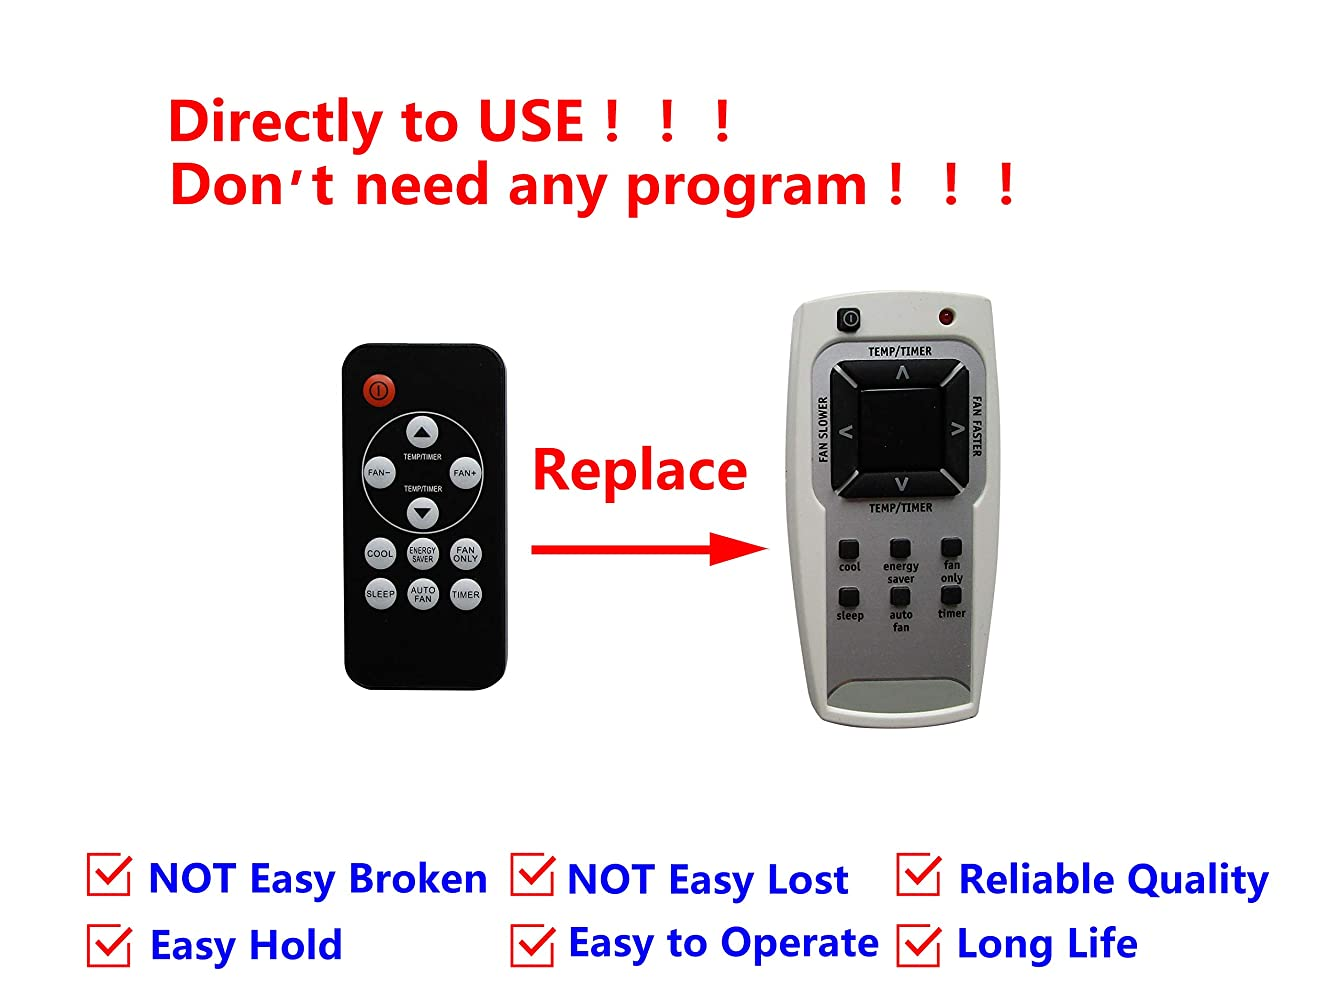 Easytry123 Remote Control for FRIGIDAIRE LRA107BU111 LRA107CT15 LRA107CV1 LRA107CV110 LRA107CV111 LRA107CV112 LRA107CV113 LRA107CV114 LRA107CV115 Room Air Conditioner